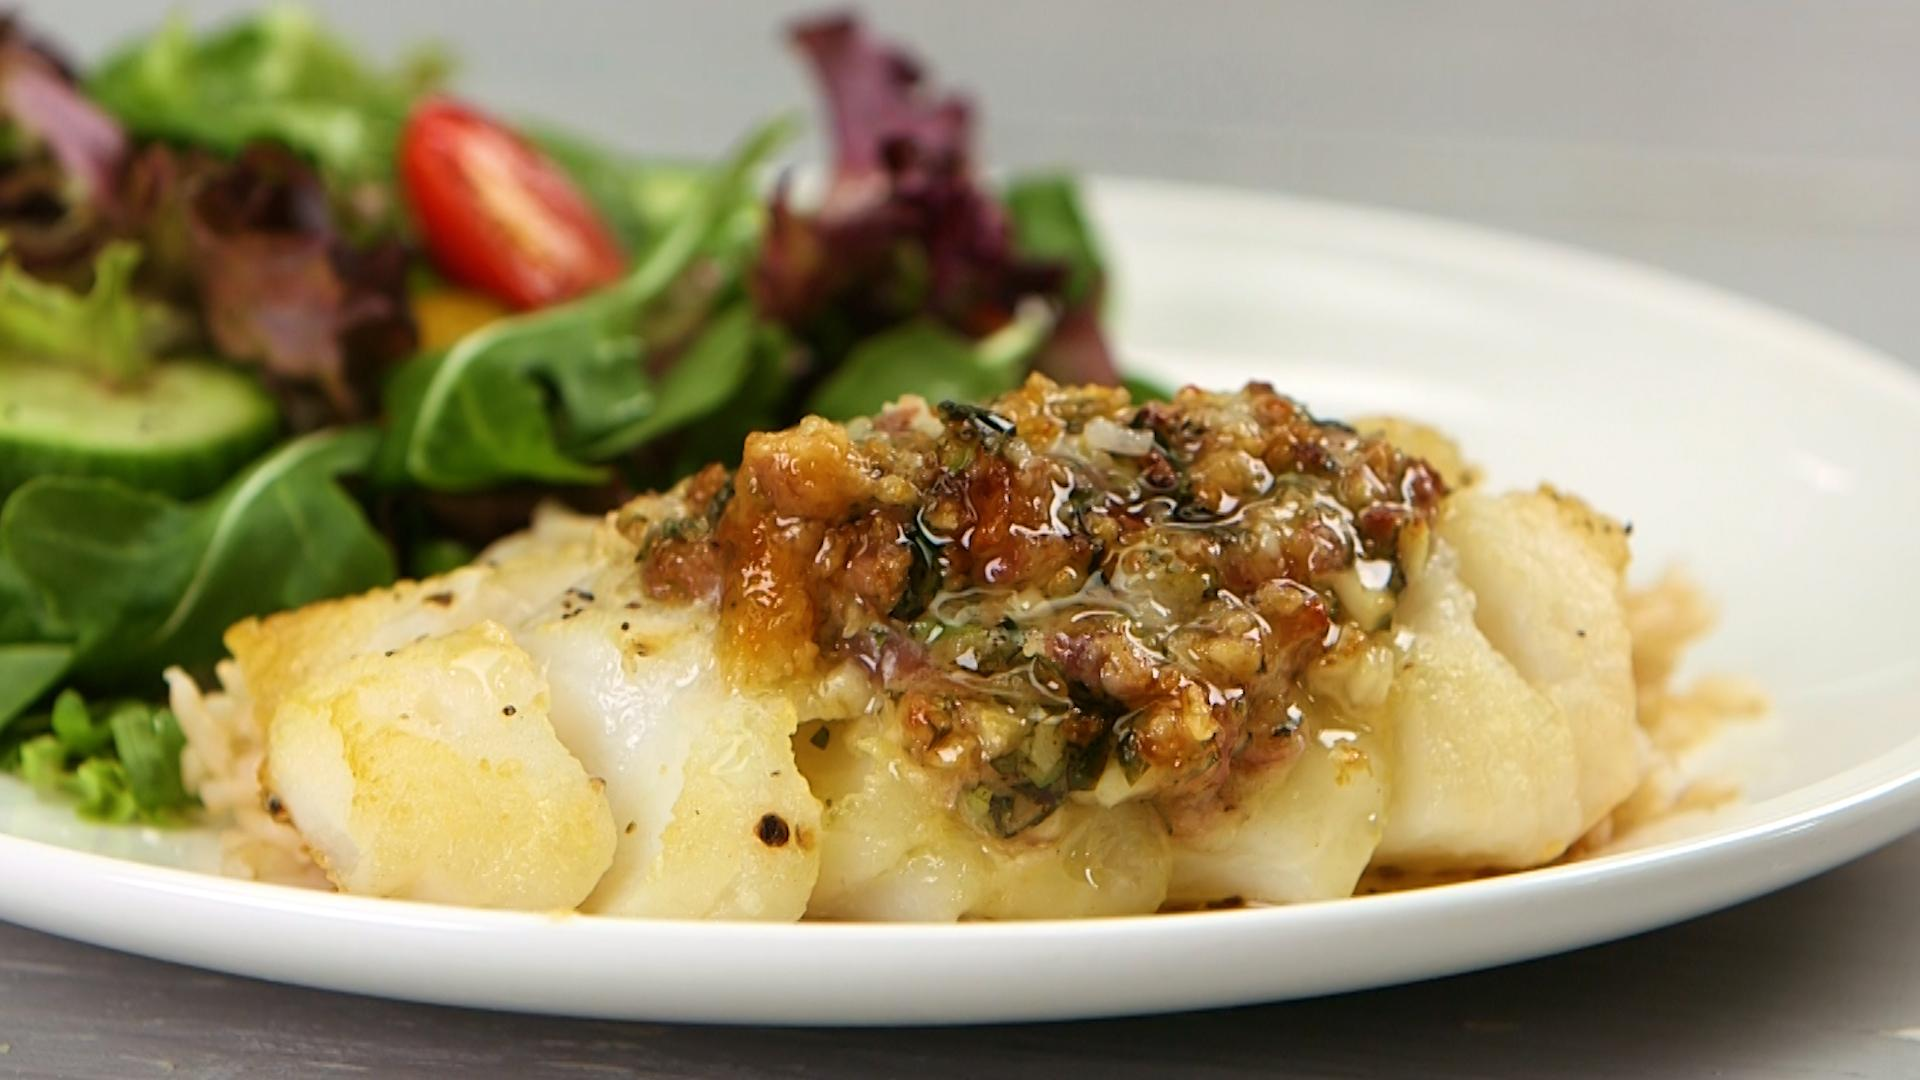 How to Make Roasted Cod with Garlic Butter - Video | MyRecipes